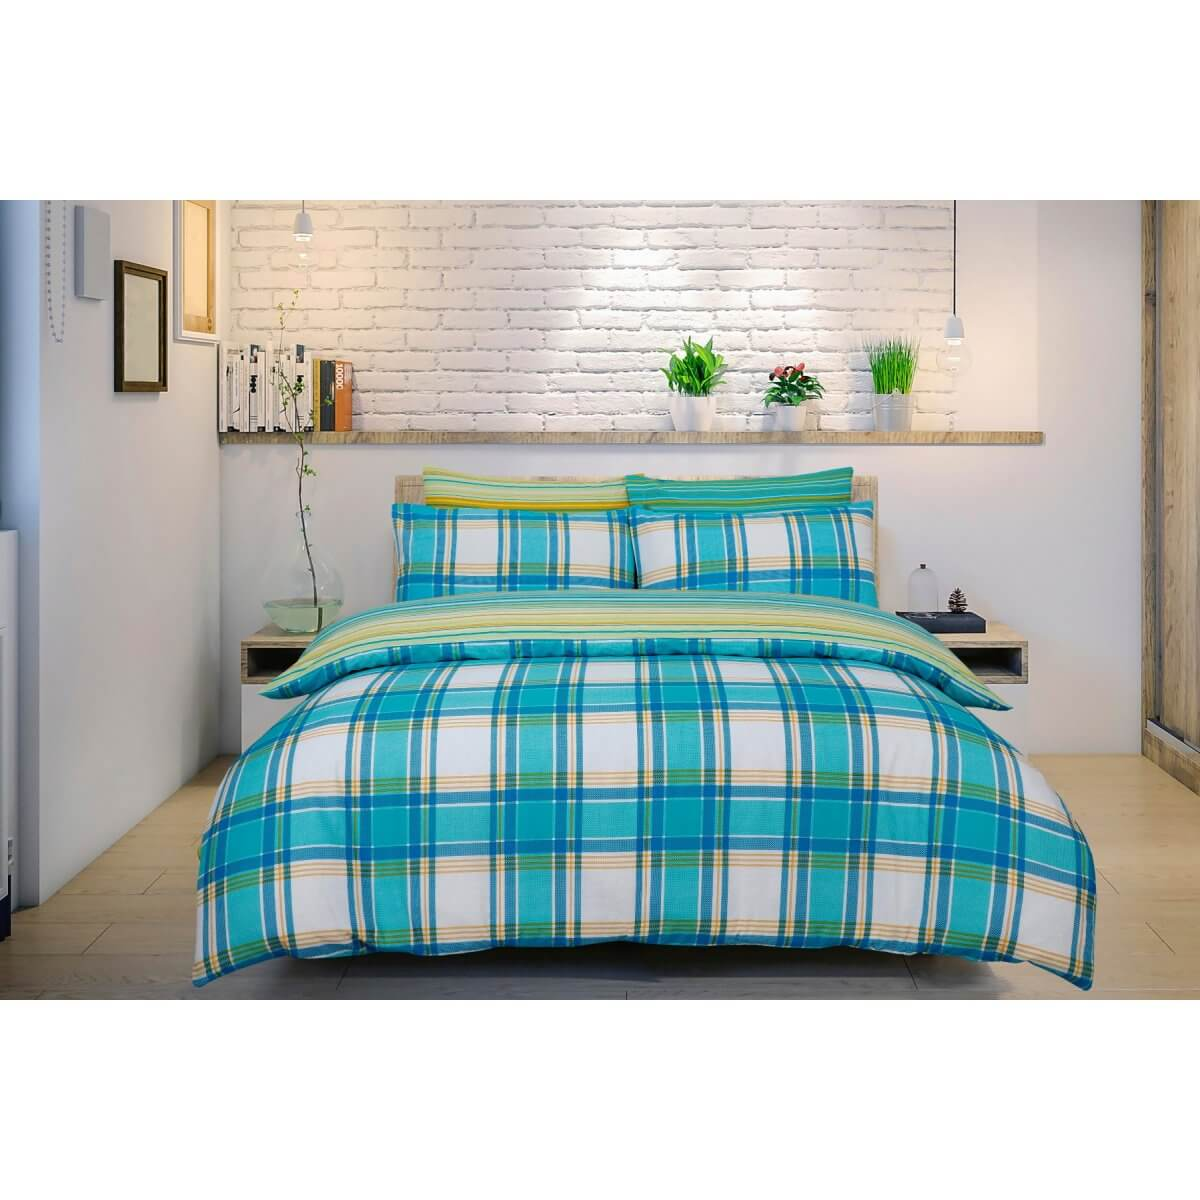 Ombre Check Teal Bedding - Reversible Duvet Cover and Pillowcase Set